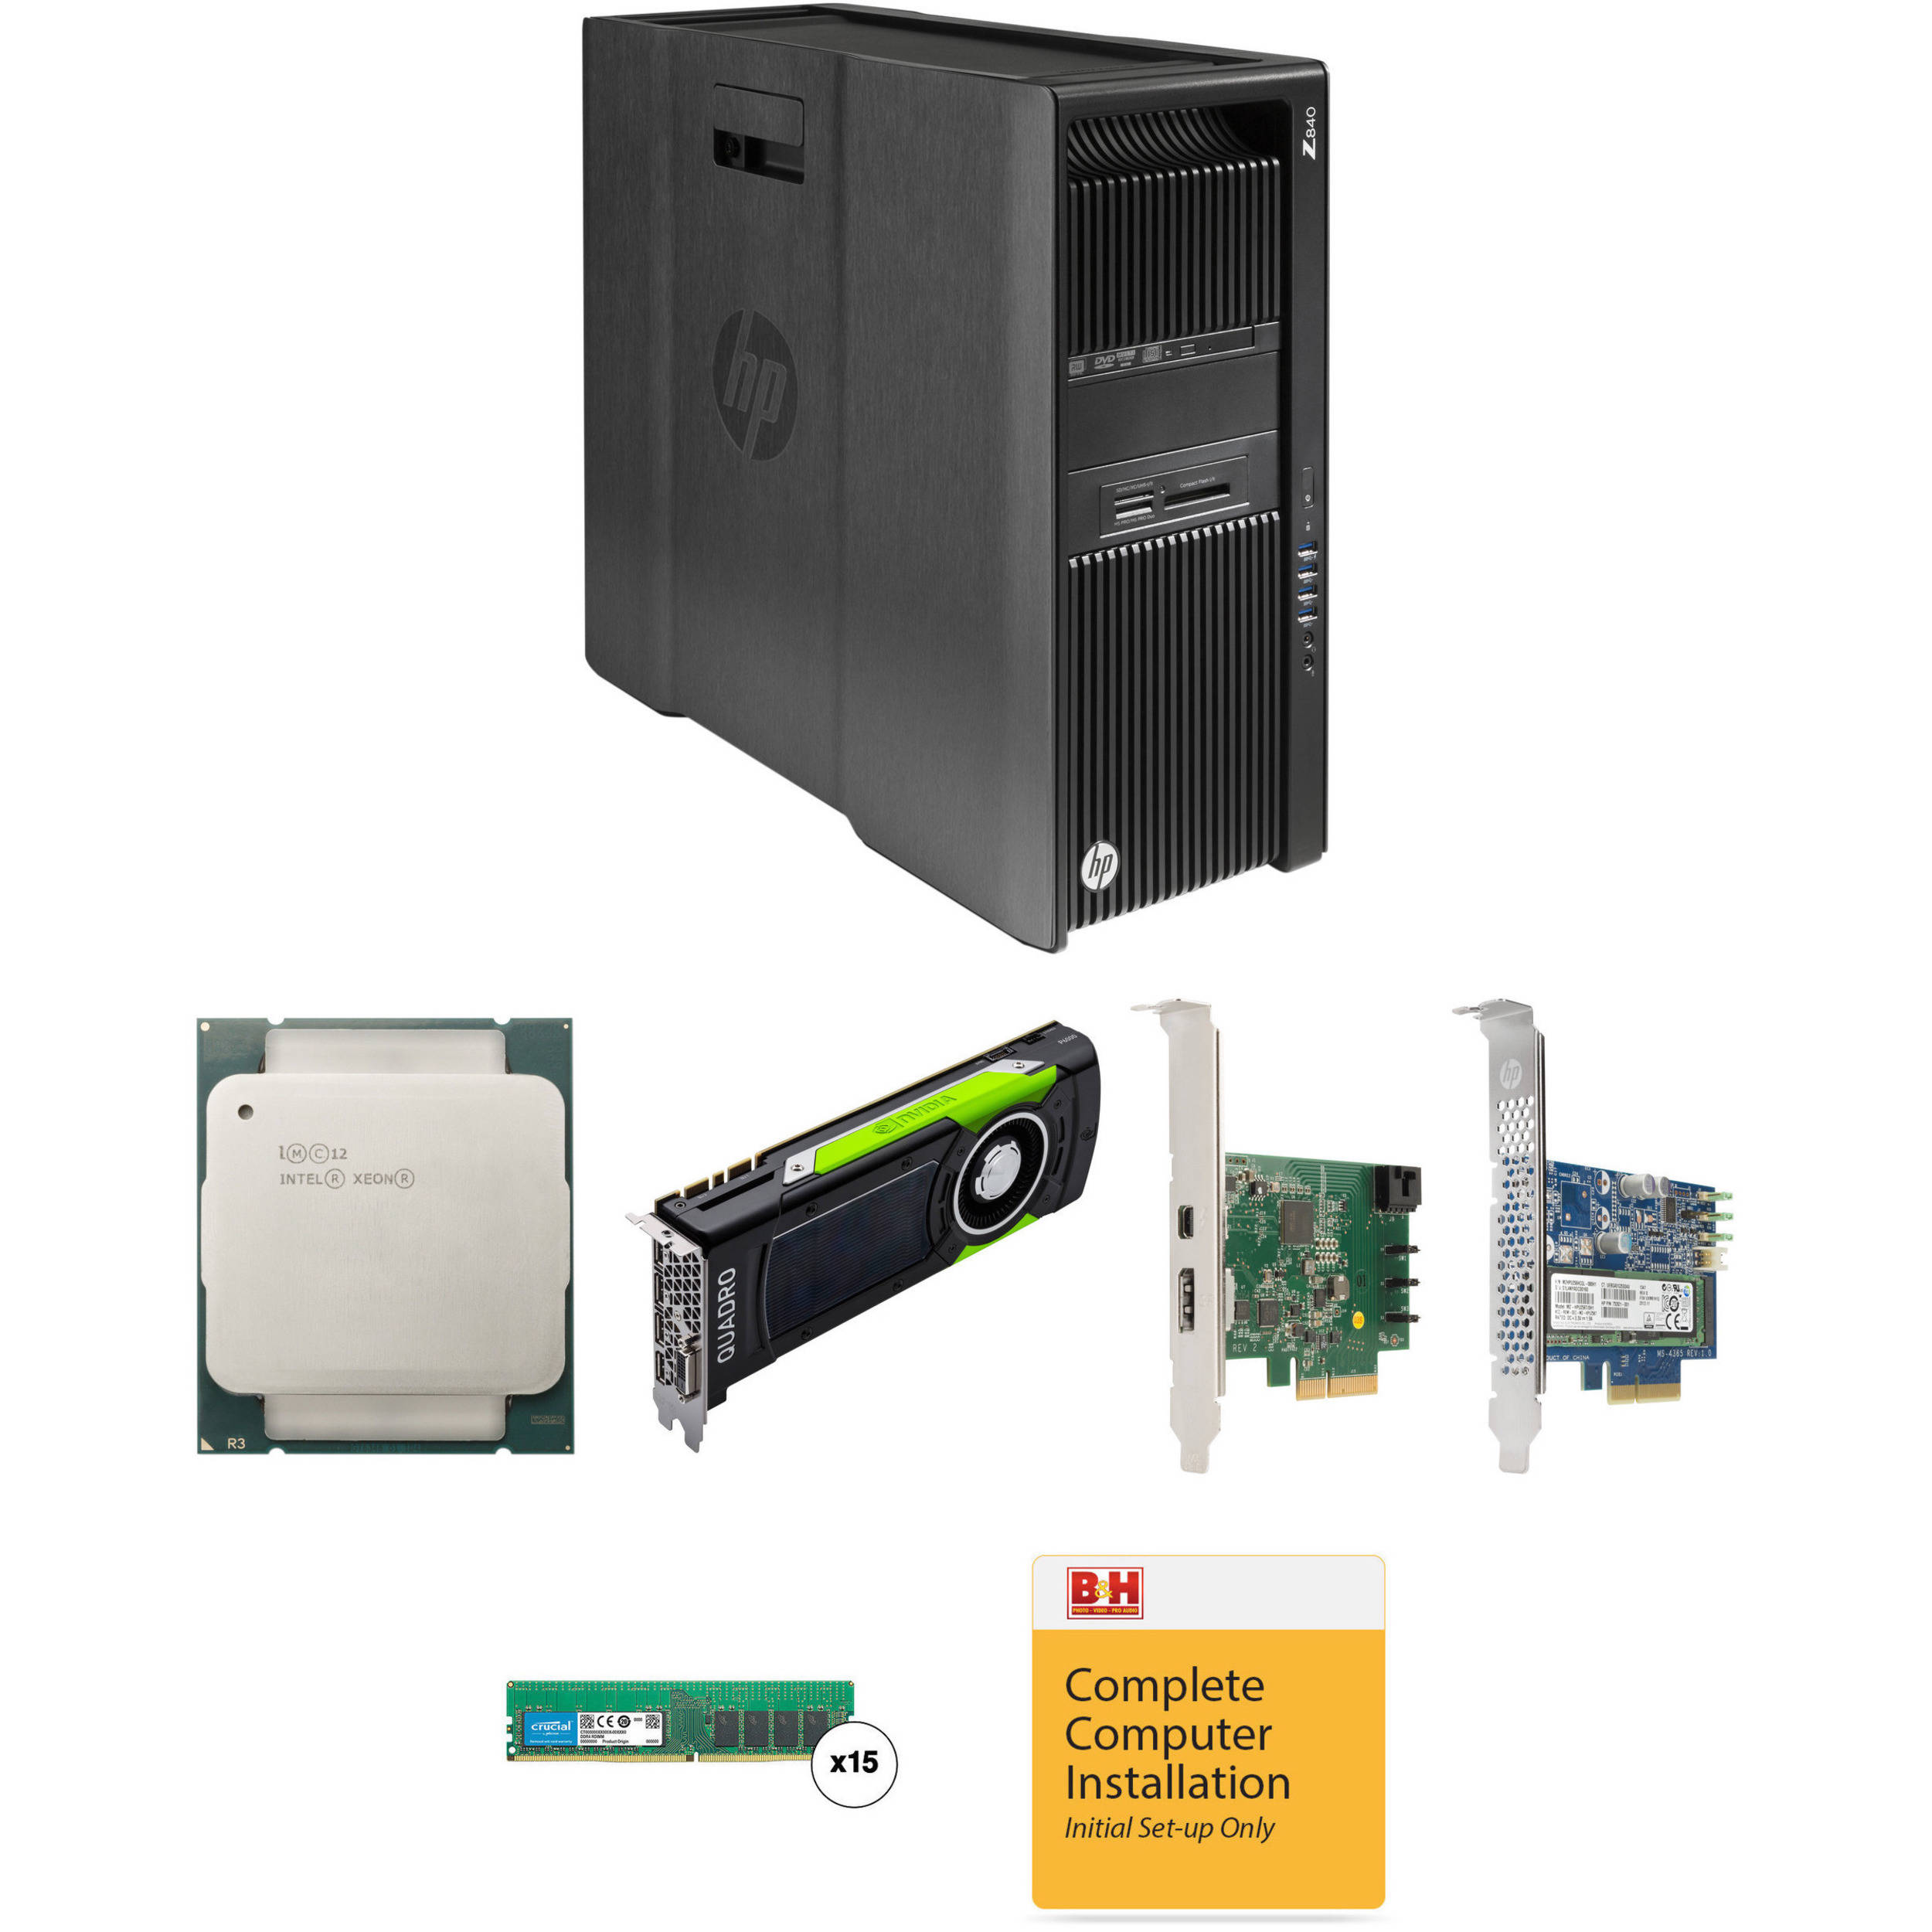 HP Z840 Series Turnkey Workstation with 2nd Xeon E5-2630 v3, 120GB RAM,  512GB SSD, Quadro M6000, and Thunderbolt 2 Card